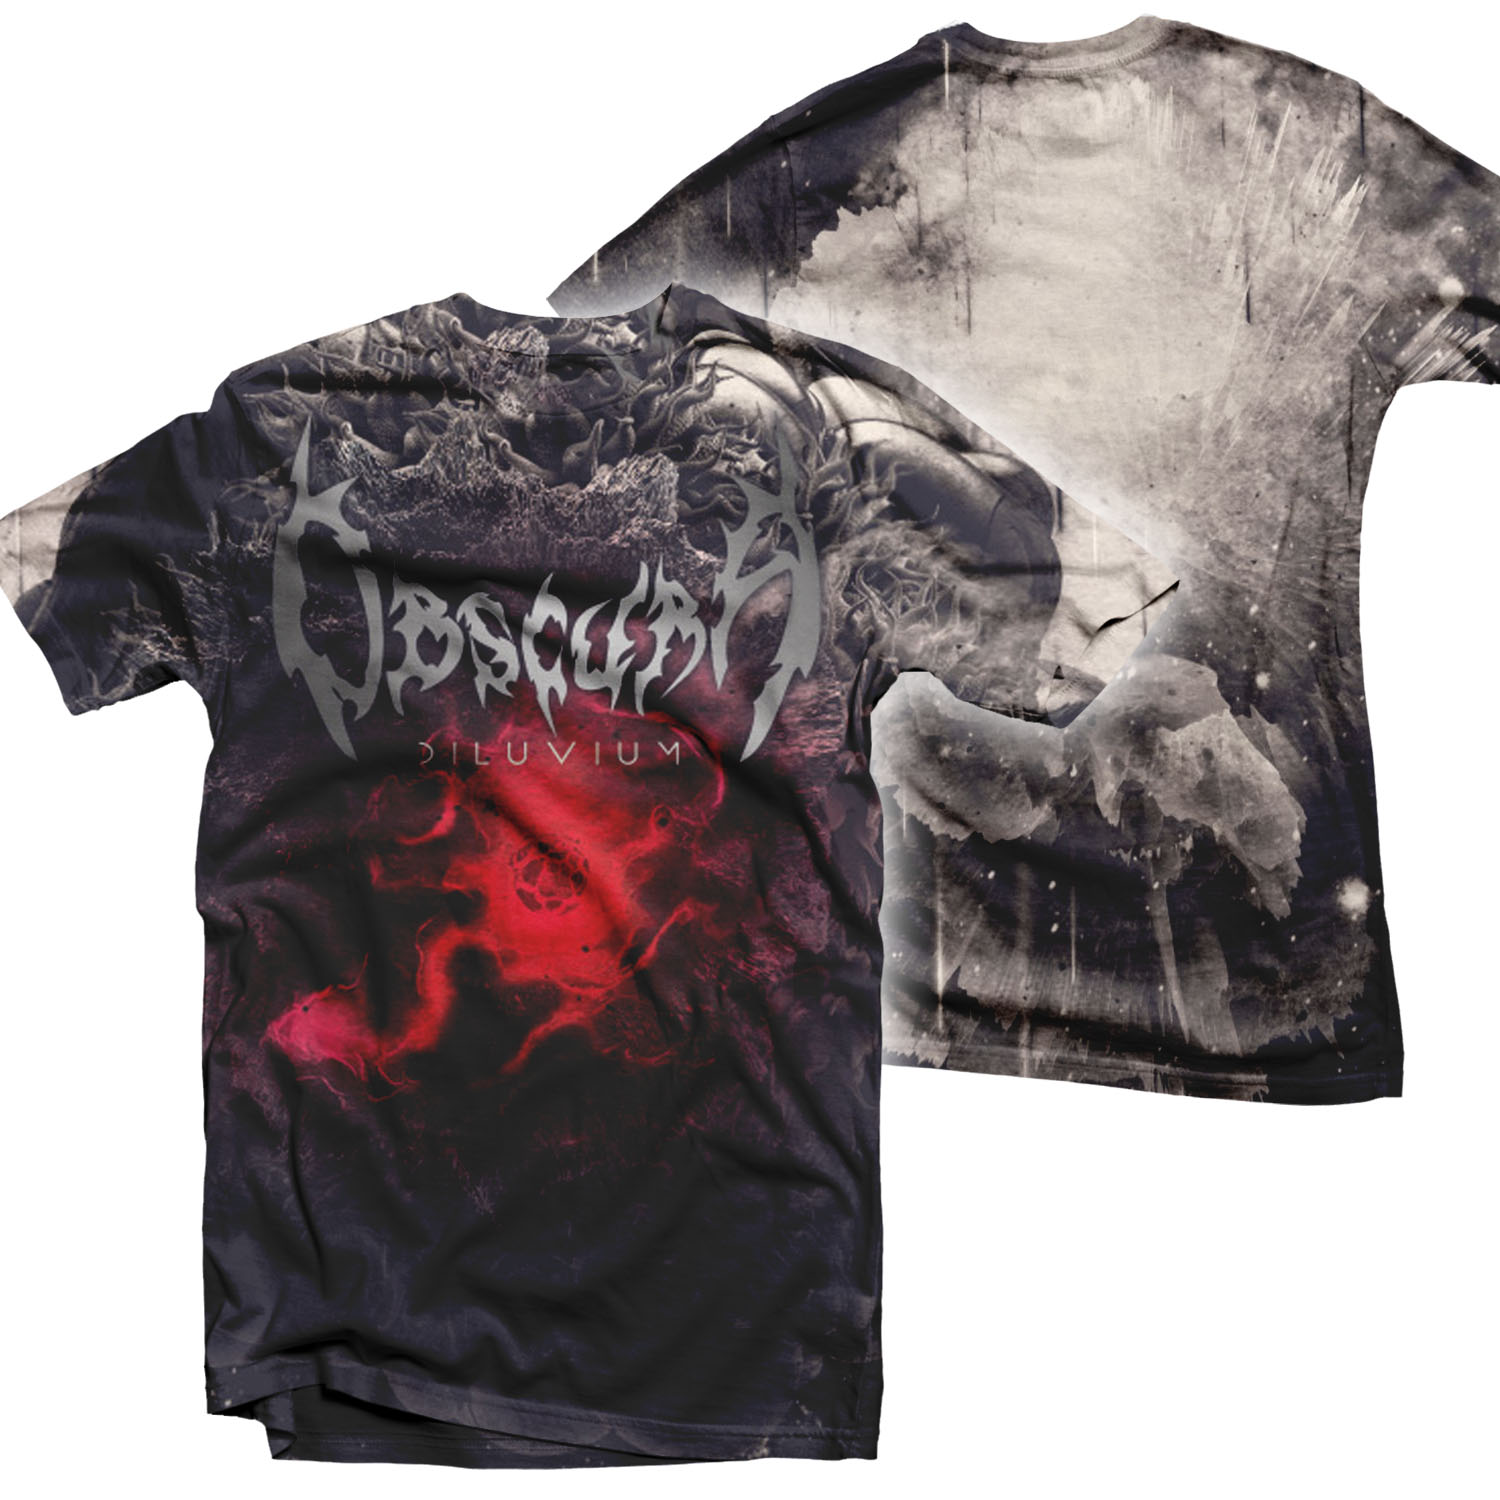 Obscura Diluvium All Over Print T Shirt Relapse Records